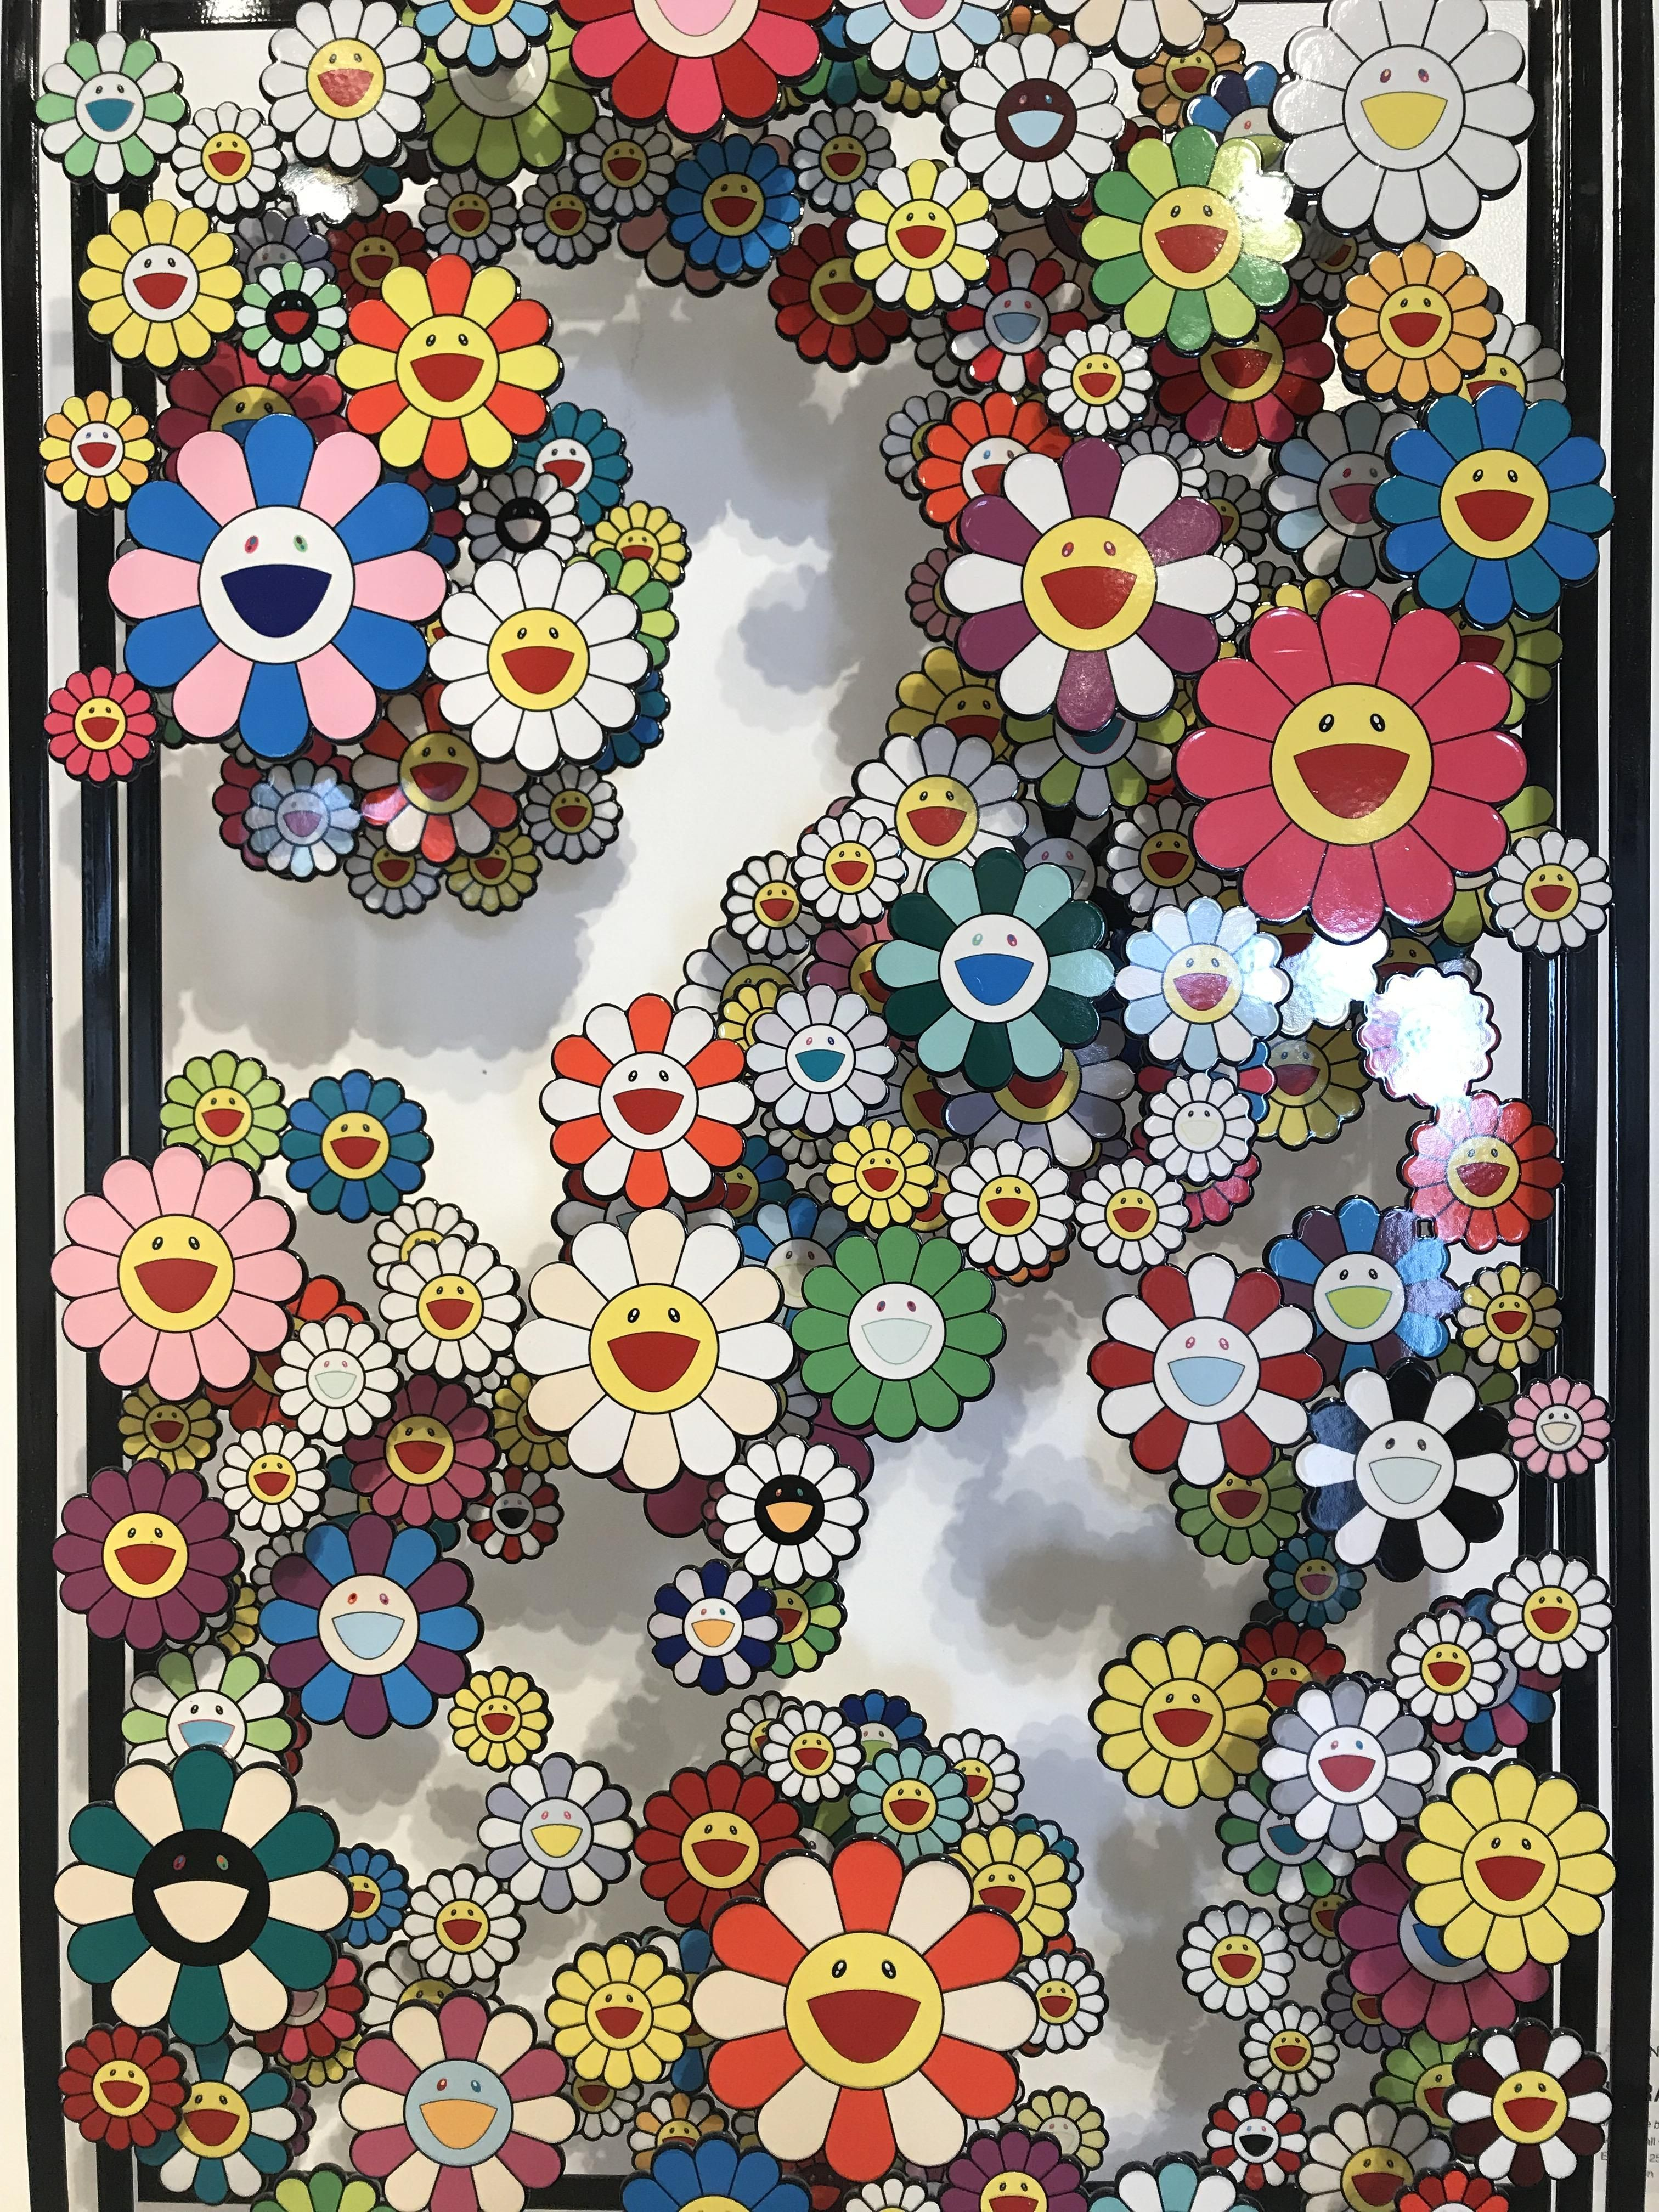 This Takashi Murakami I took a pic of at a gallery in